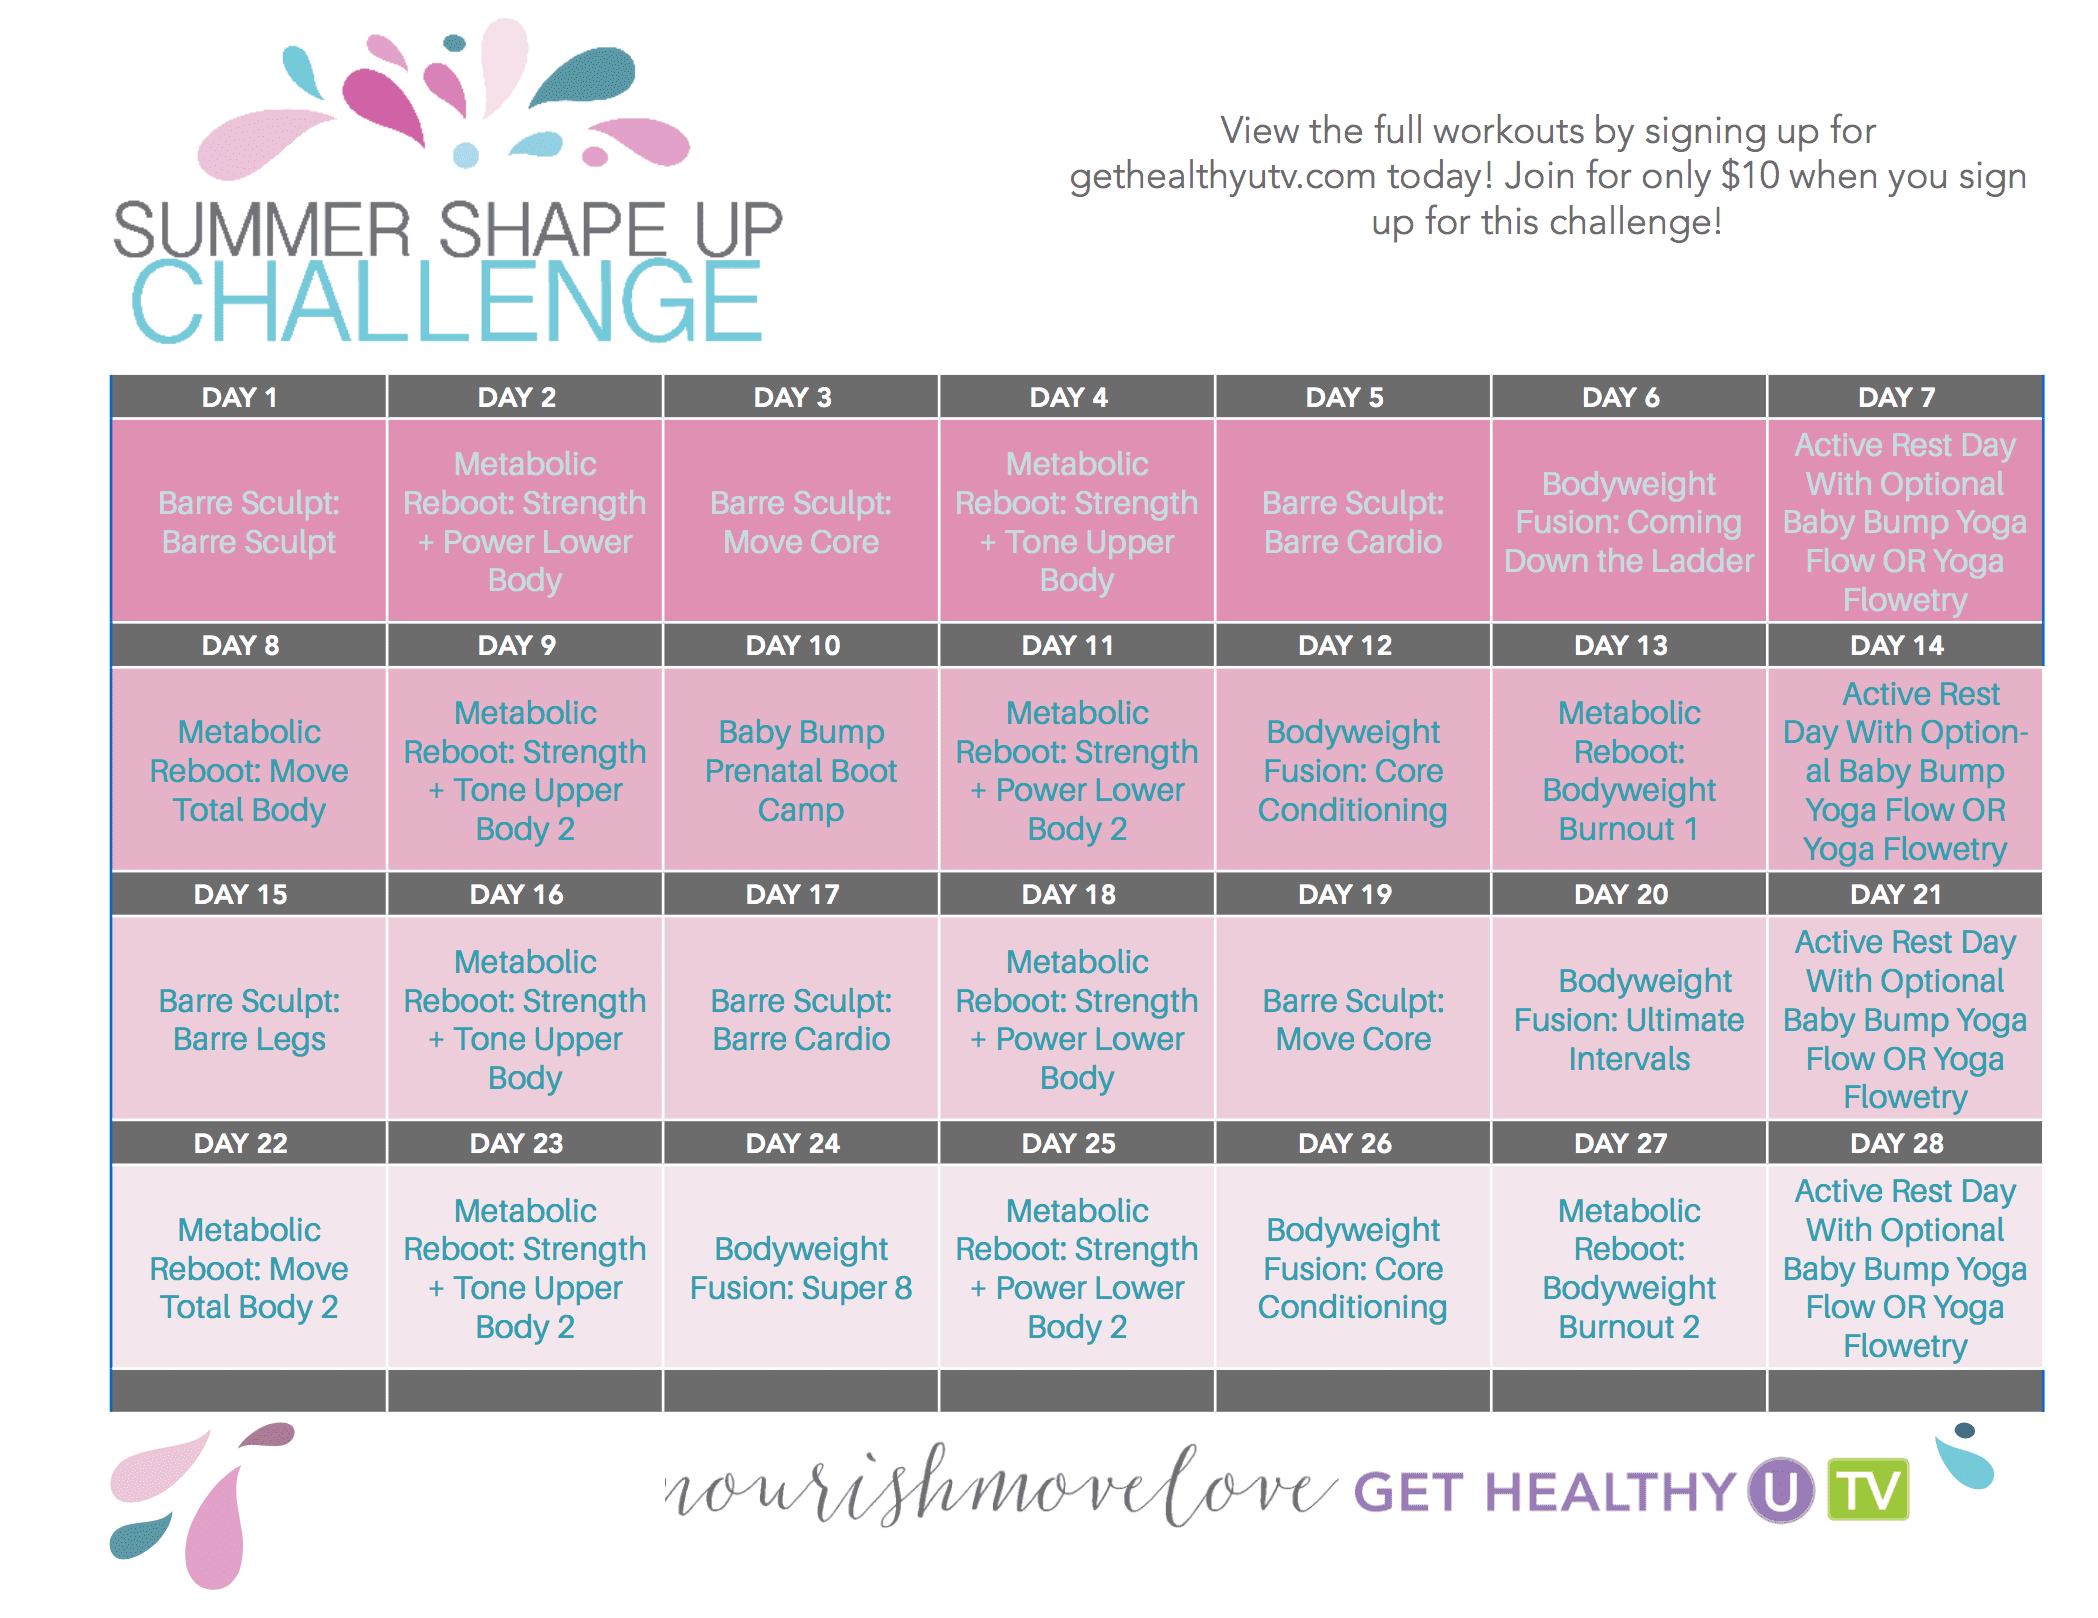 Summer Shape Up 28-Day Workout Calendar